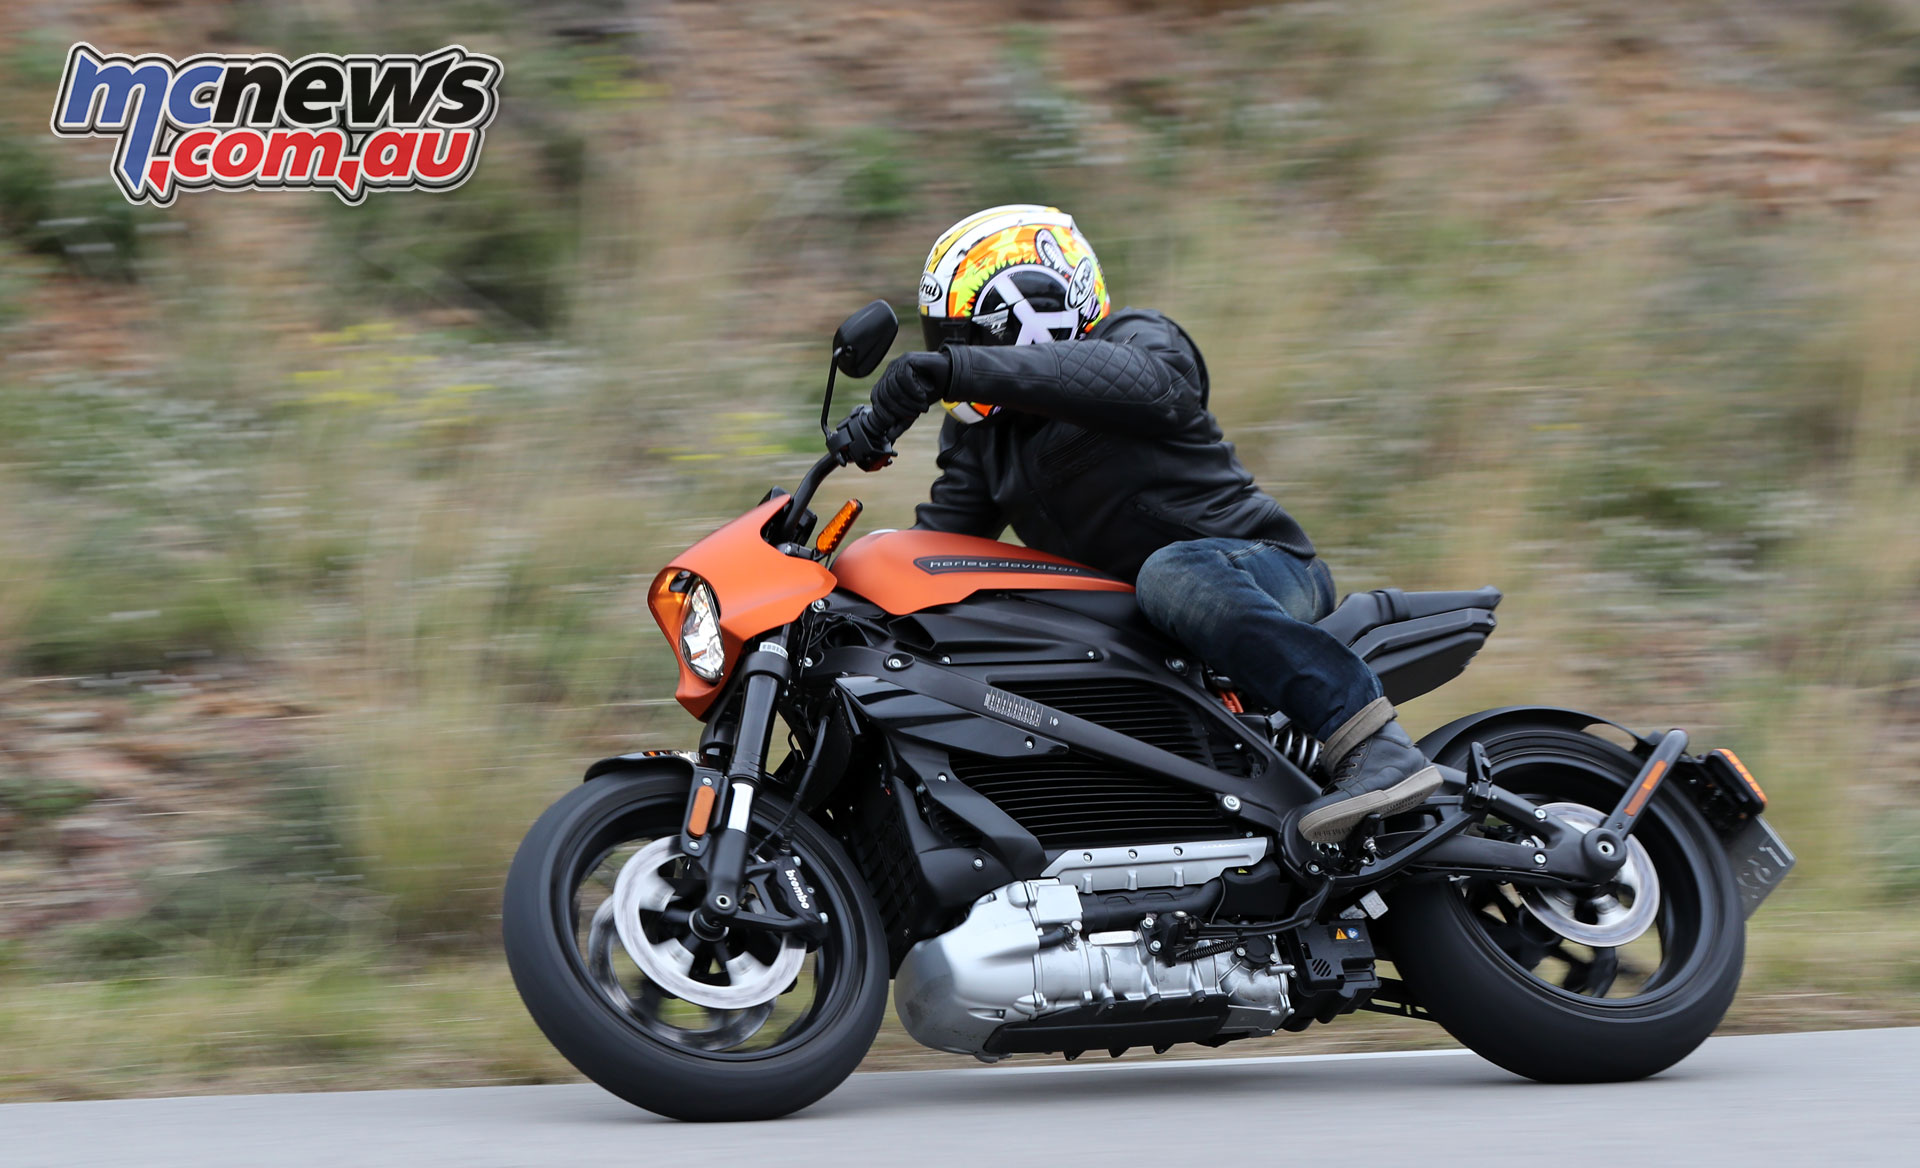 Harley Davidson LiveWire Electric Motorcycle Review AZI